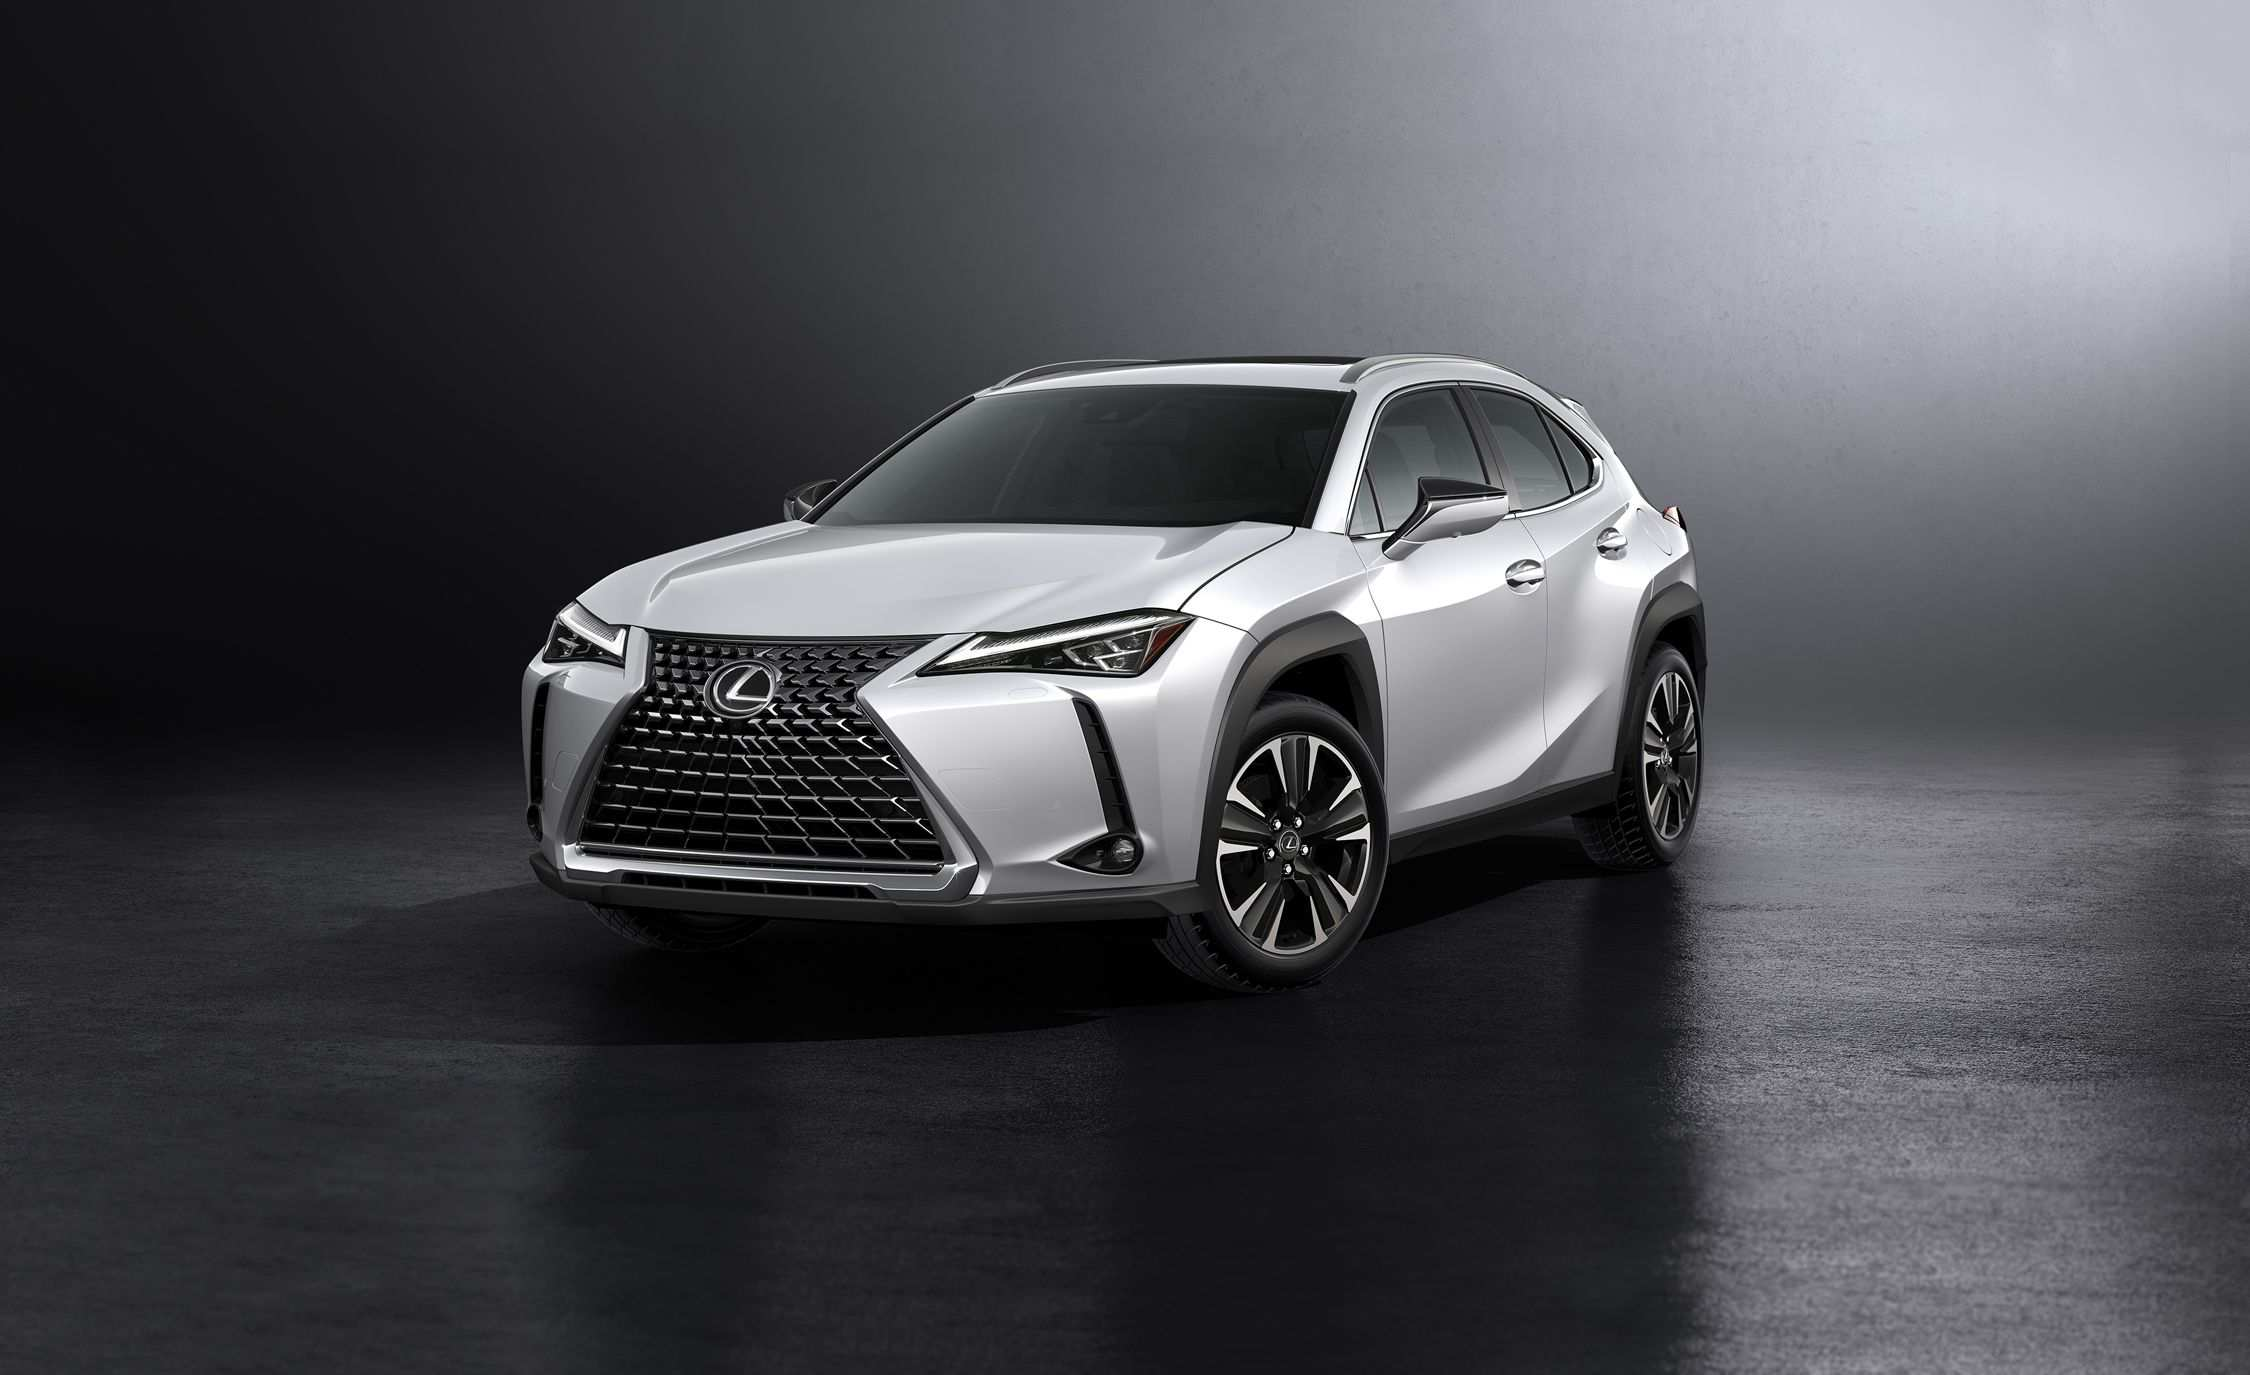 62 Gallery of Lexus 2019 Models Review with Lexus 2019 Models